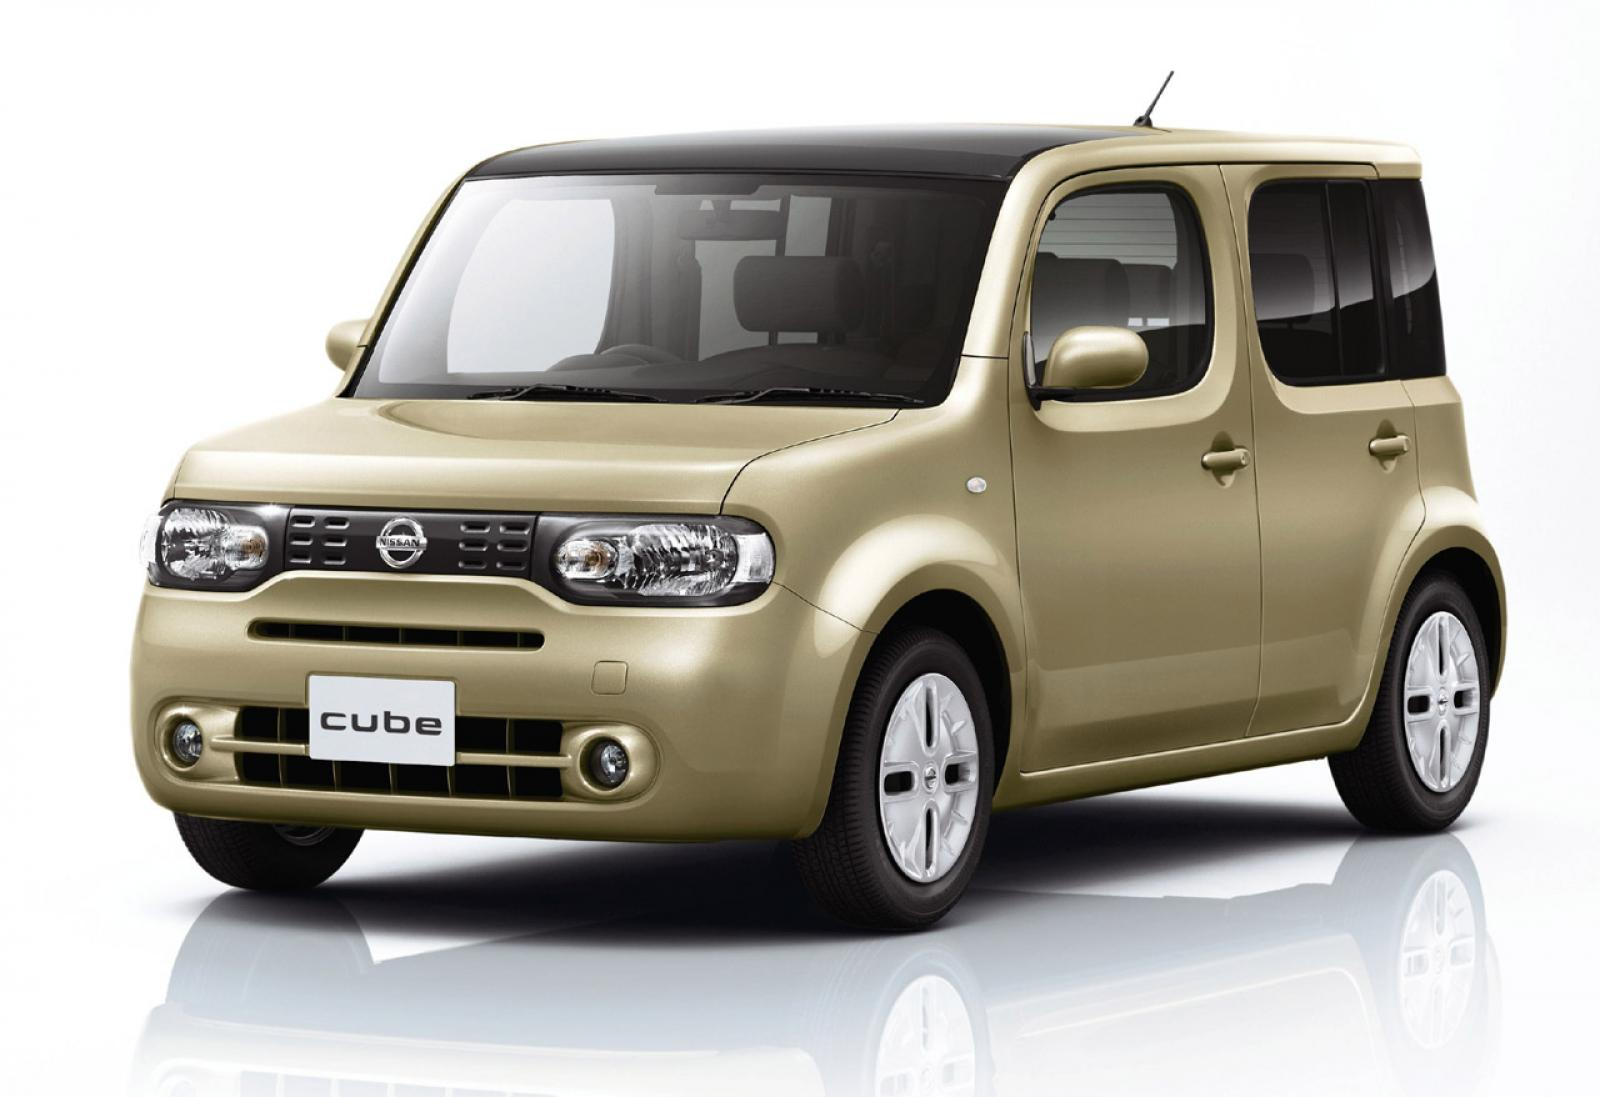 2014 nissan cube information and photos zombiedrive. Black Bedroom Furniture Sets. Home Design Ideas